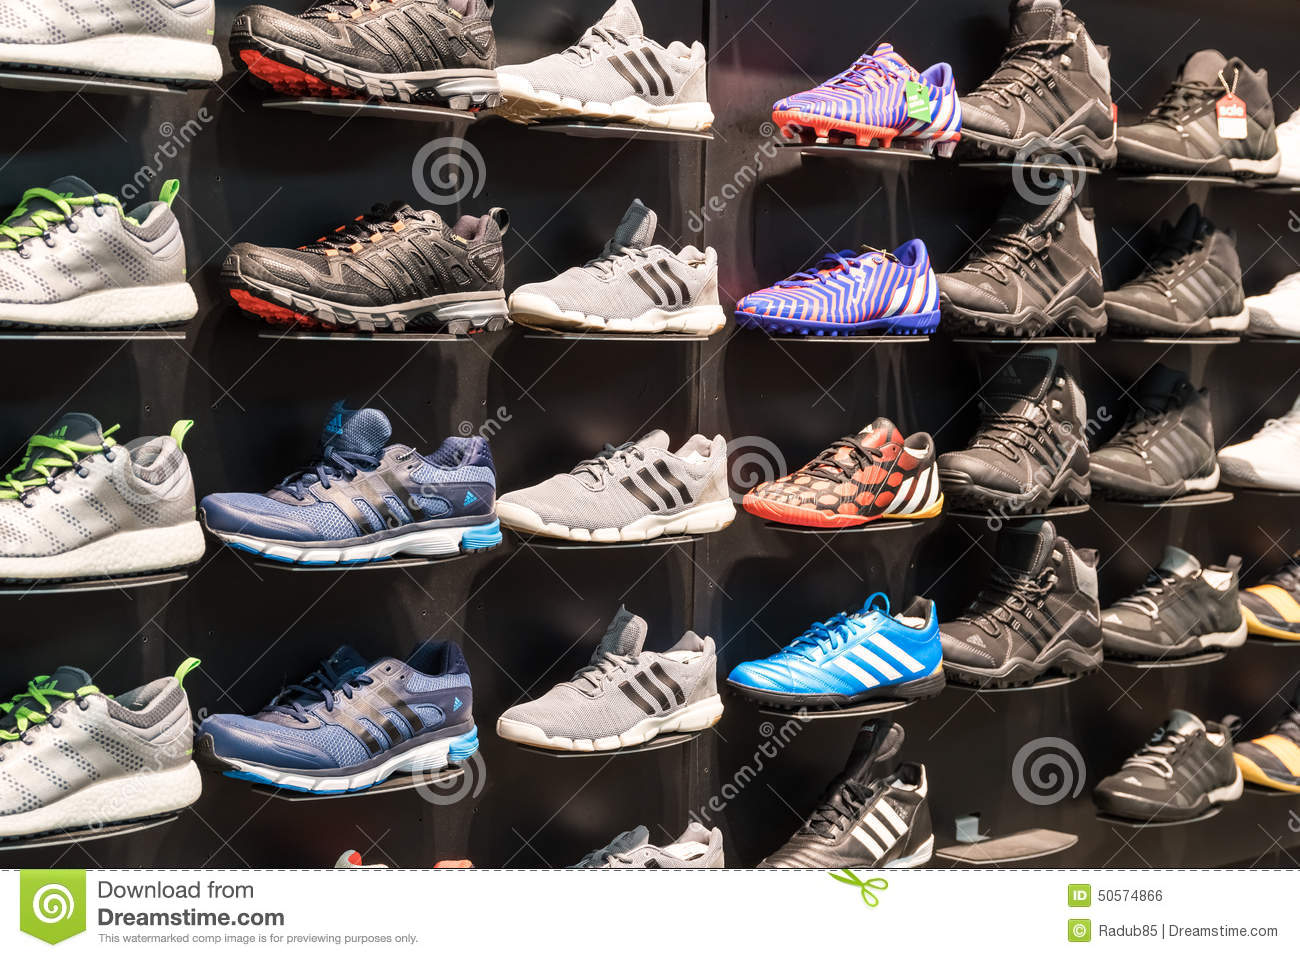 finest selection 5d1cf 950be Adidas Shoes In Shoe Store Display